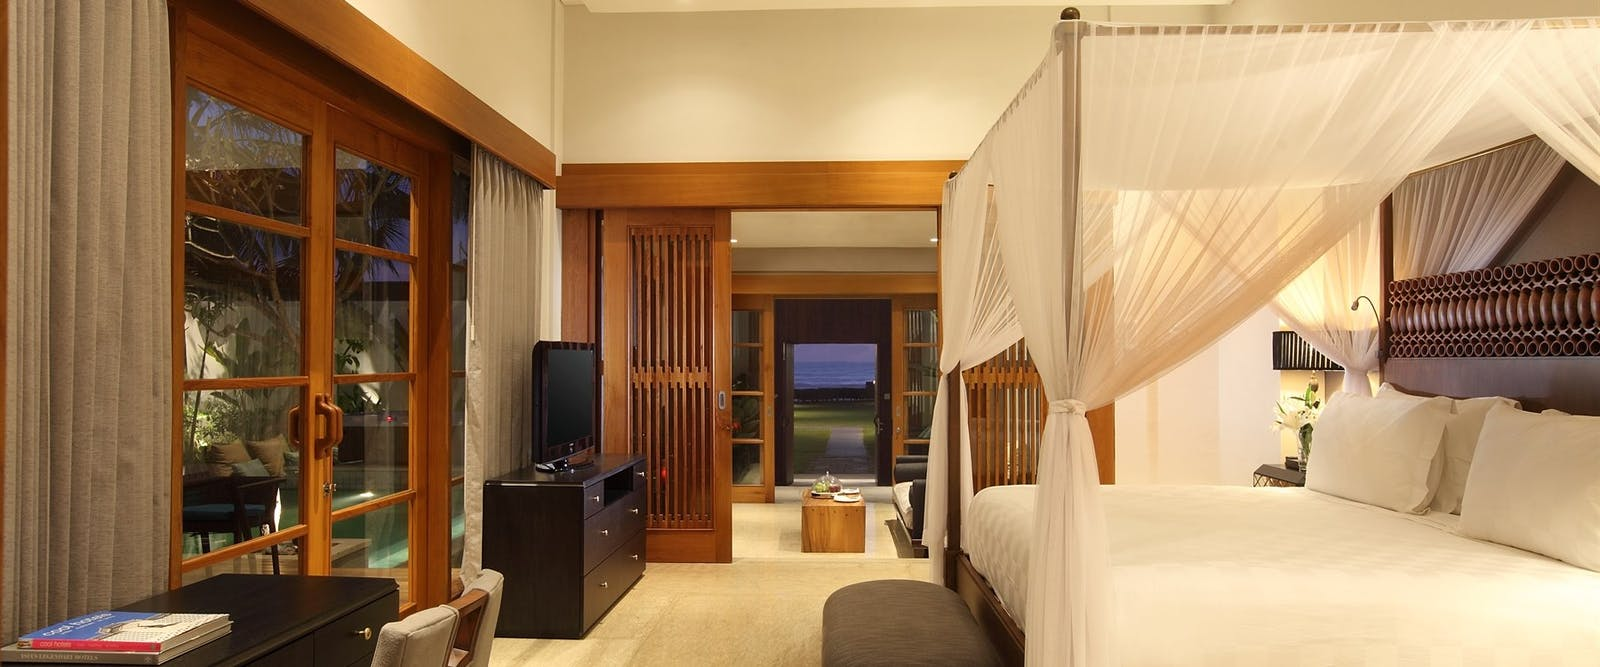 Royal Pavilion Bedroom at The Samaya Seminyak